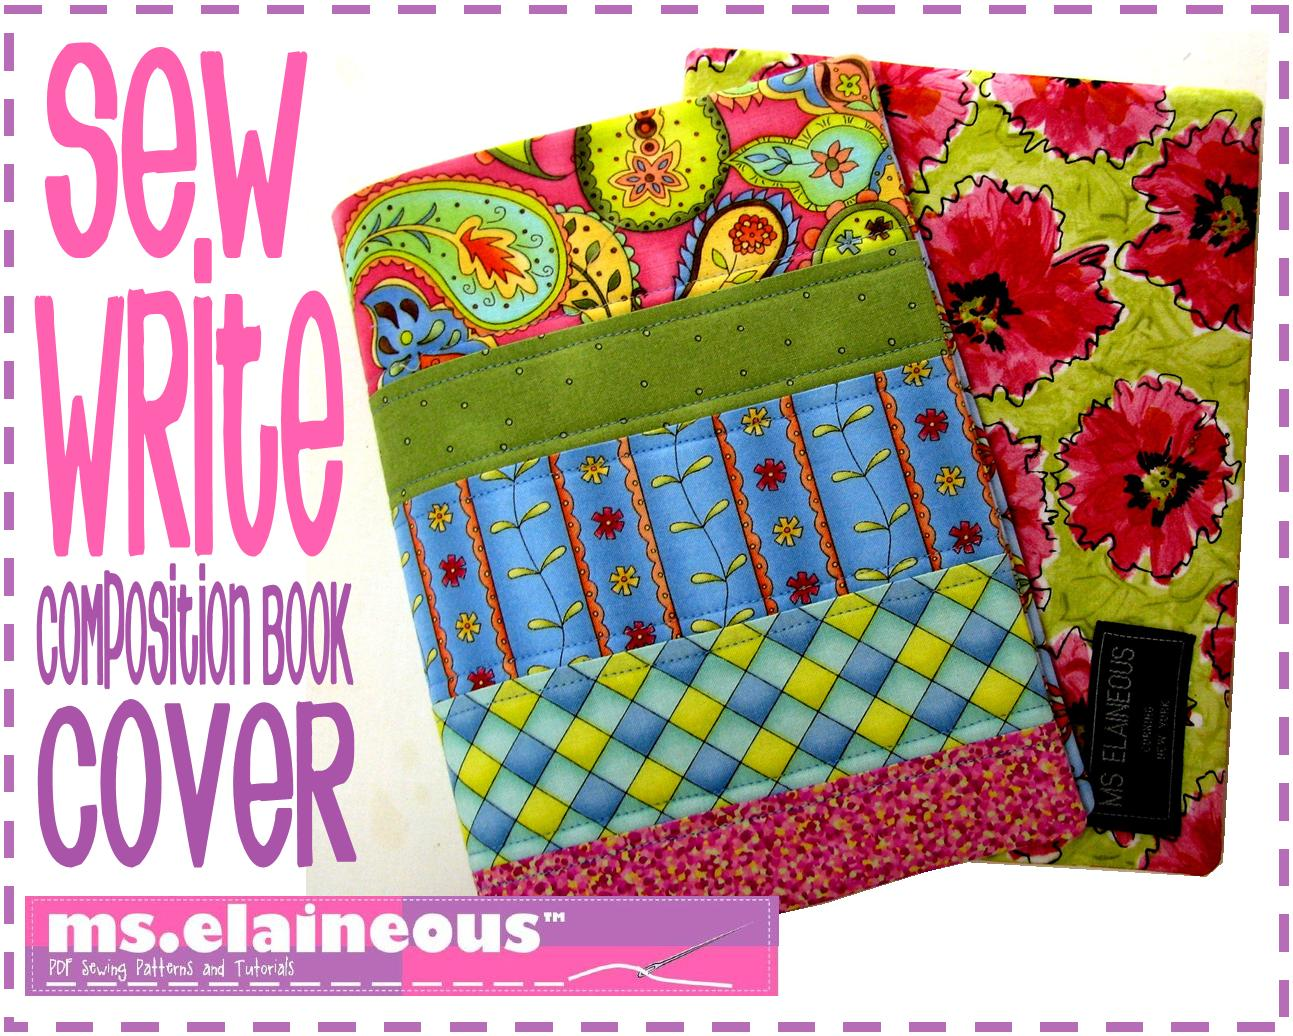 Book Cover Pattern ~ Ms elaineous teaches sewing composition book cover